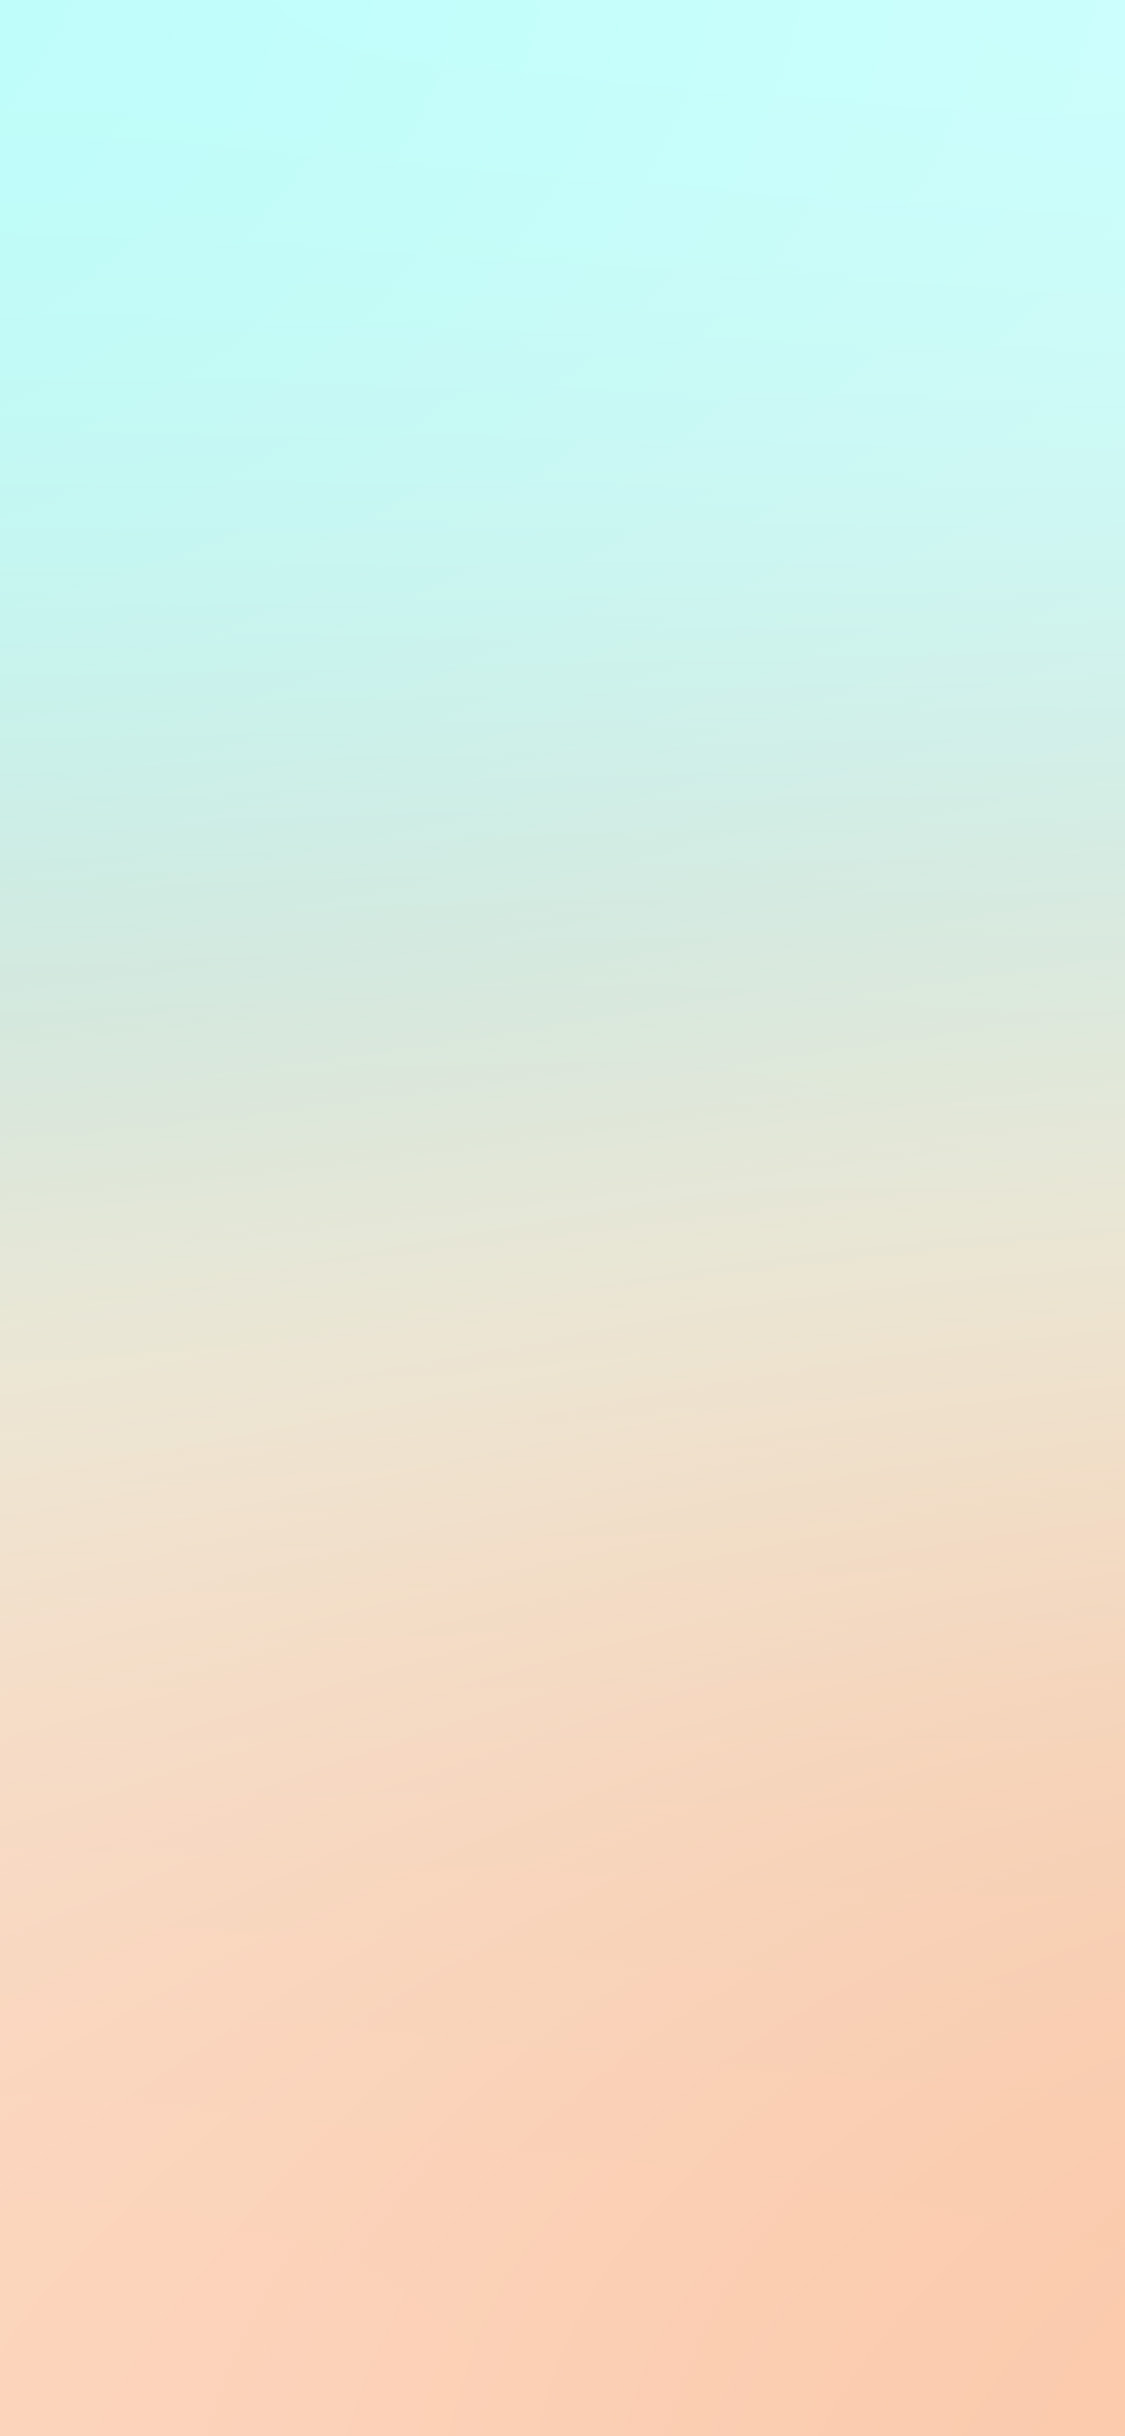 papers.co sn87 soft pink pastel blur gradation 41 iphone wallpaper